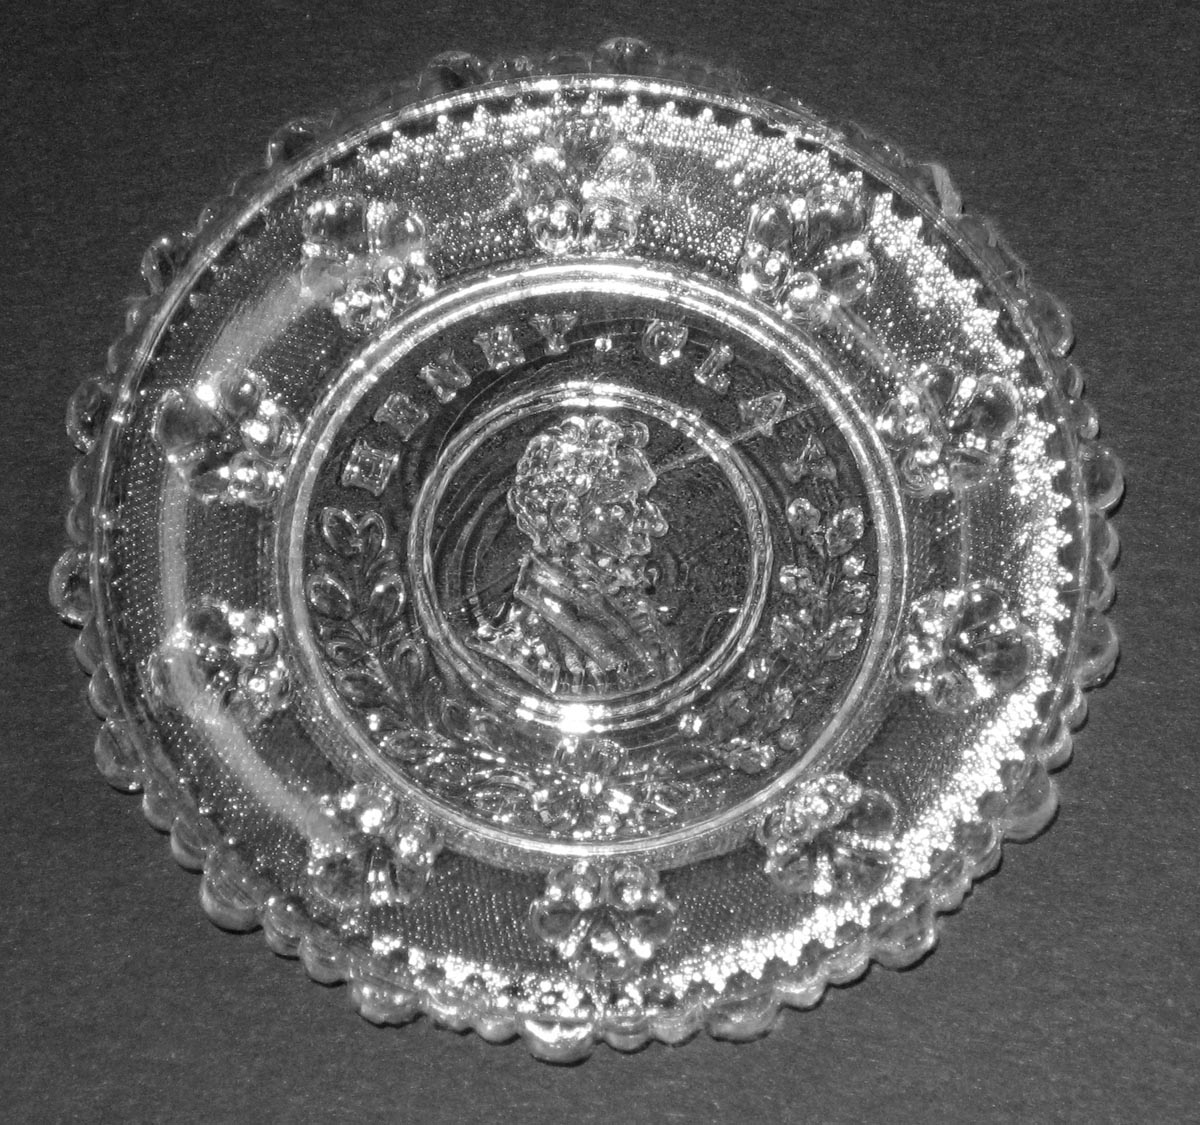 2003.0041.001 Glass cup plate